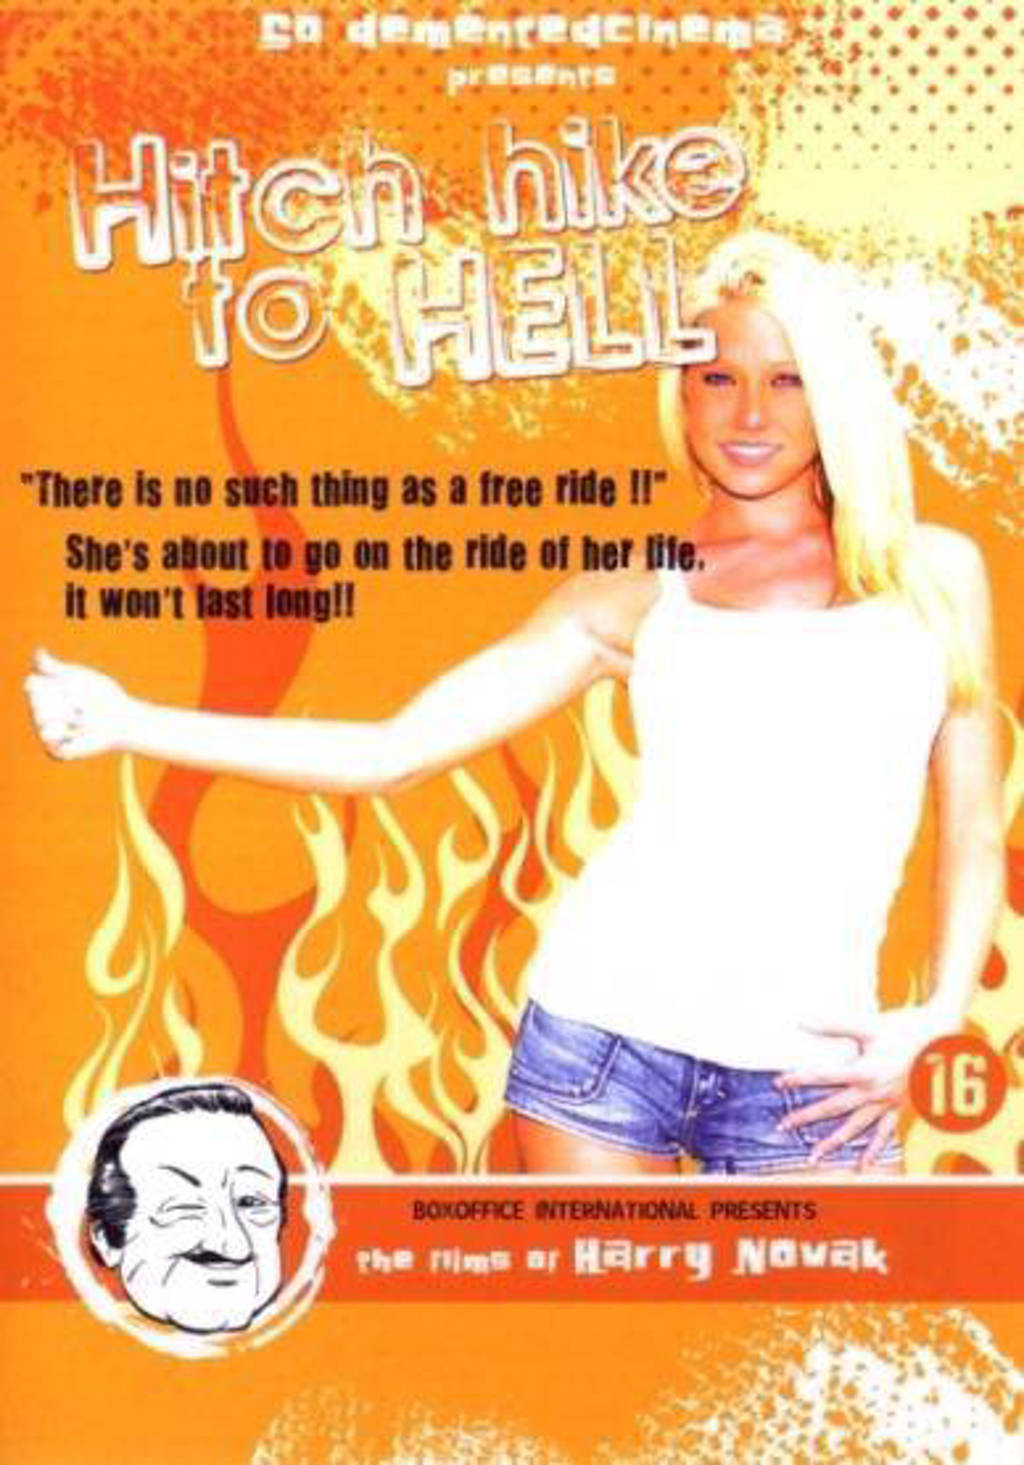 Hitchhike to hell (DVD)